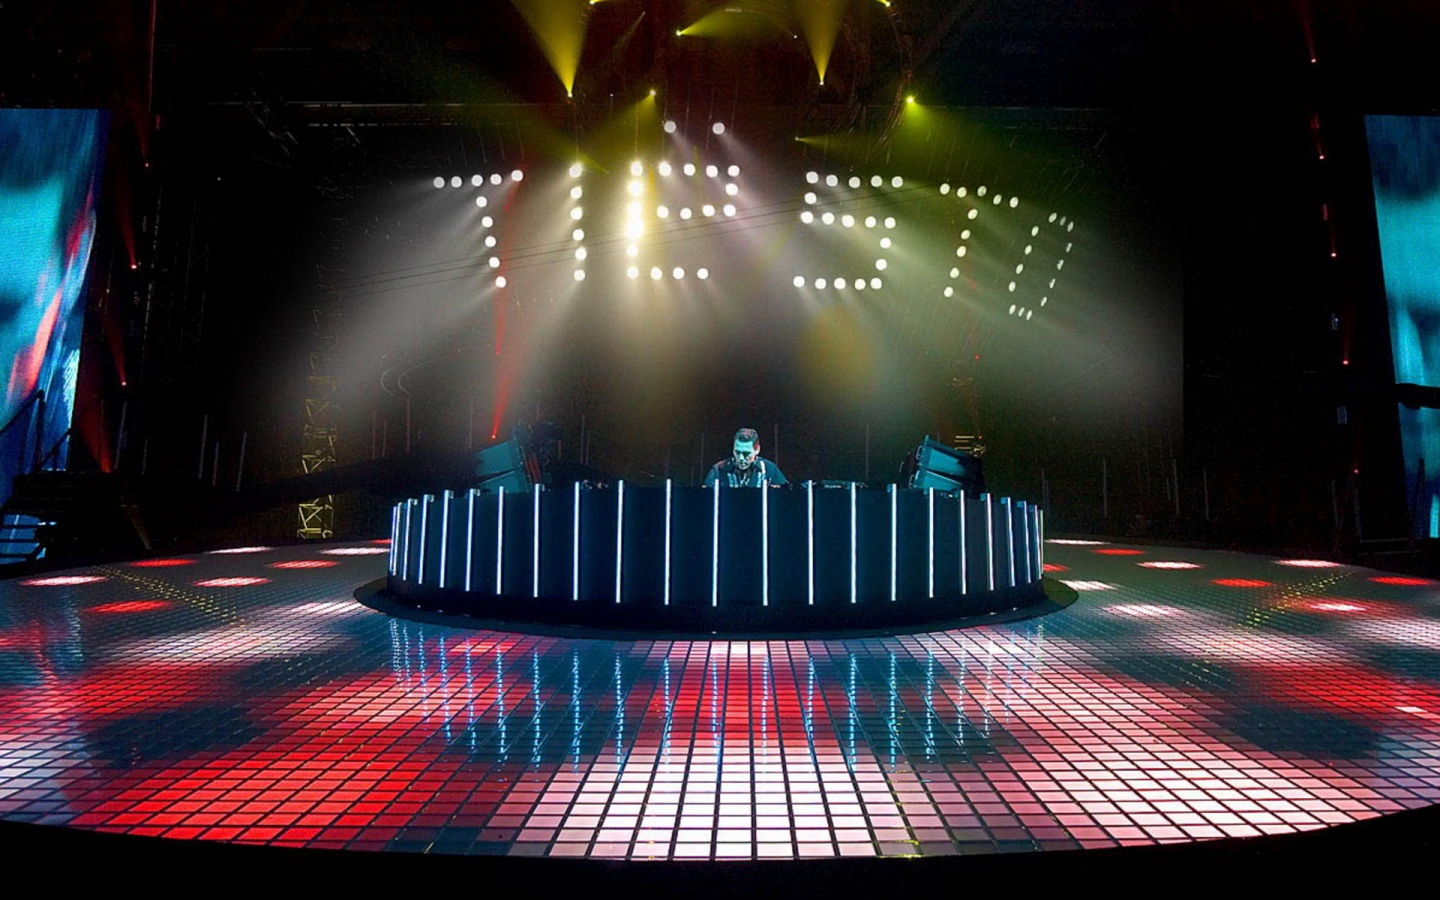 1440x900 Tiesto In Concert wallpaper music and dance wallpapers 1440x900